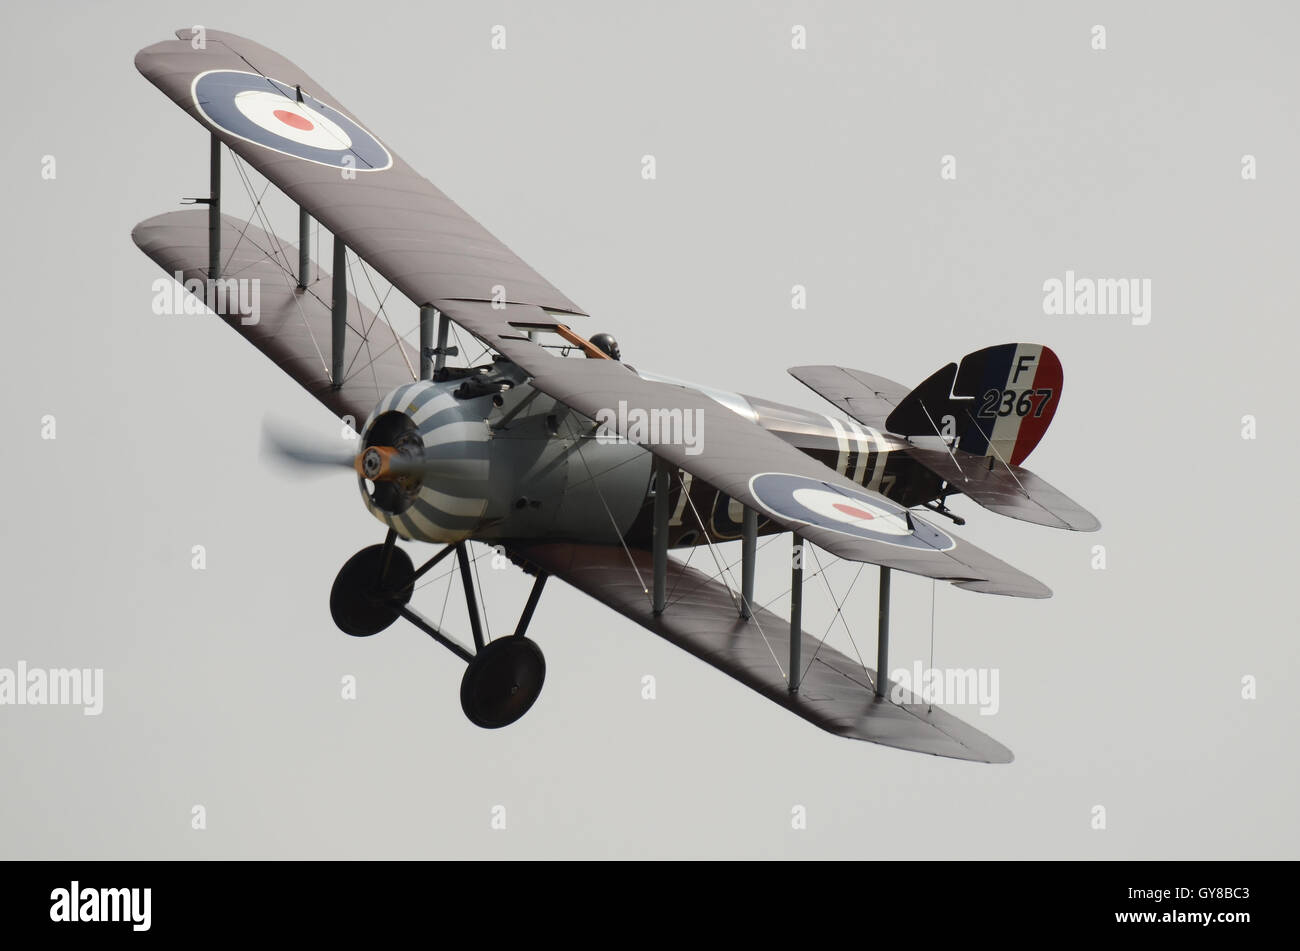 Sopwith Snipe at Stow Maries. First World War, World War One biplane fighter plane Stock Photo